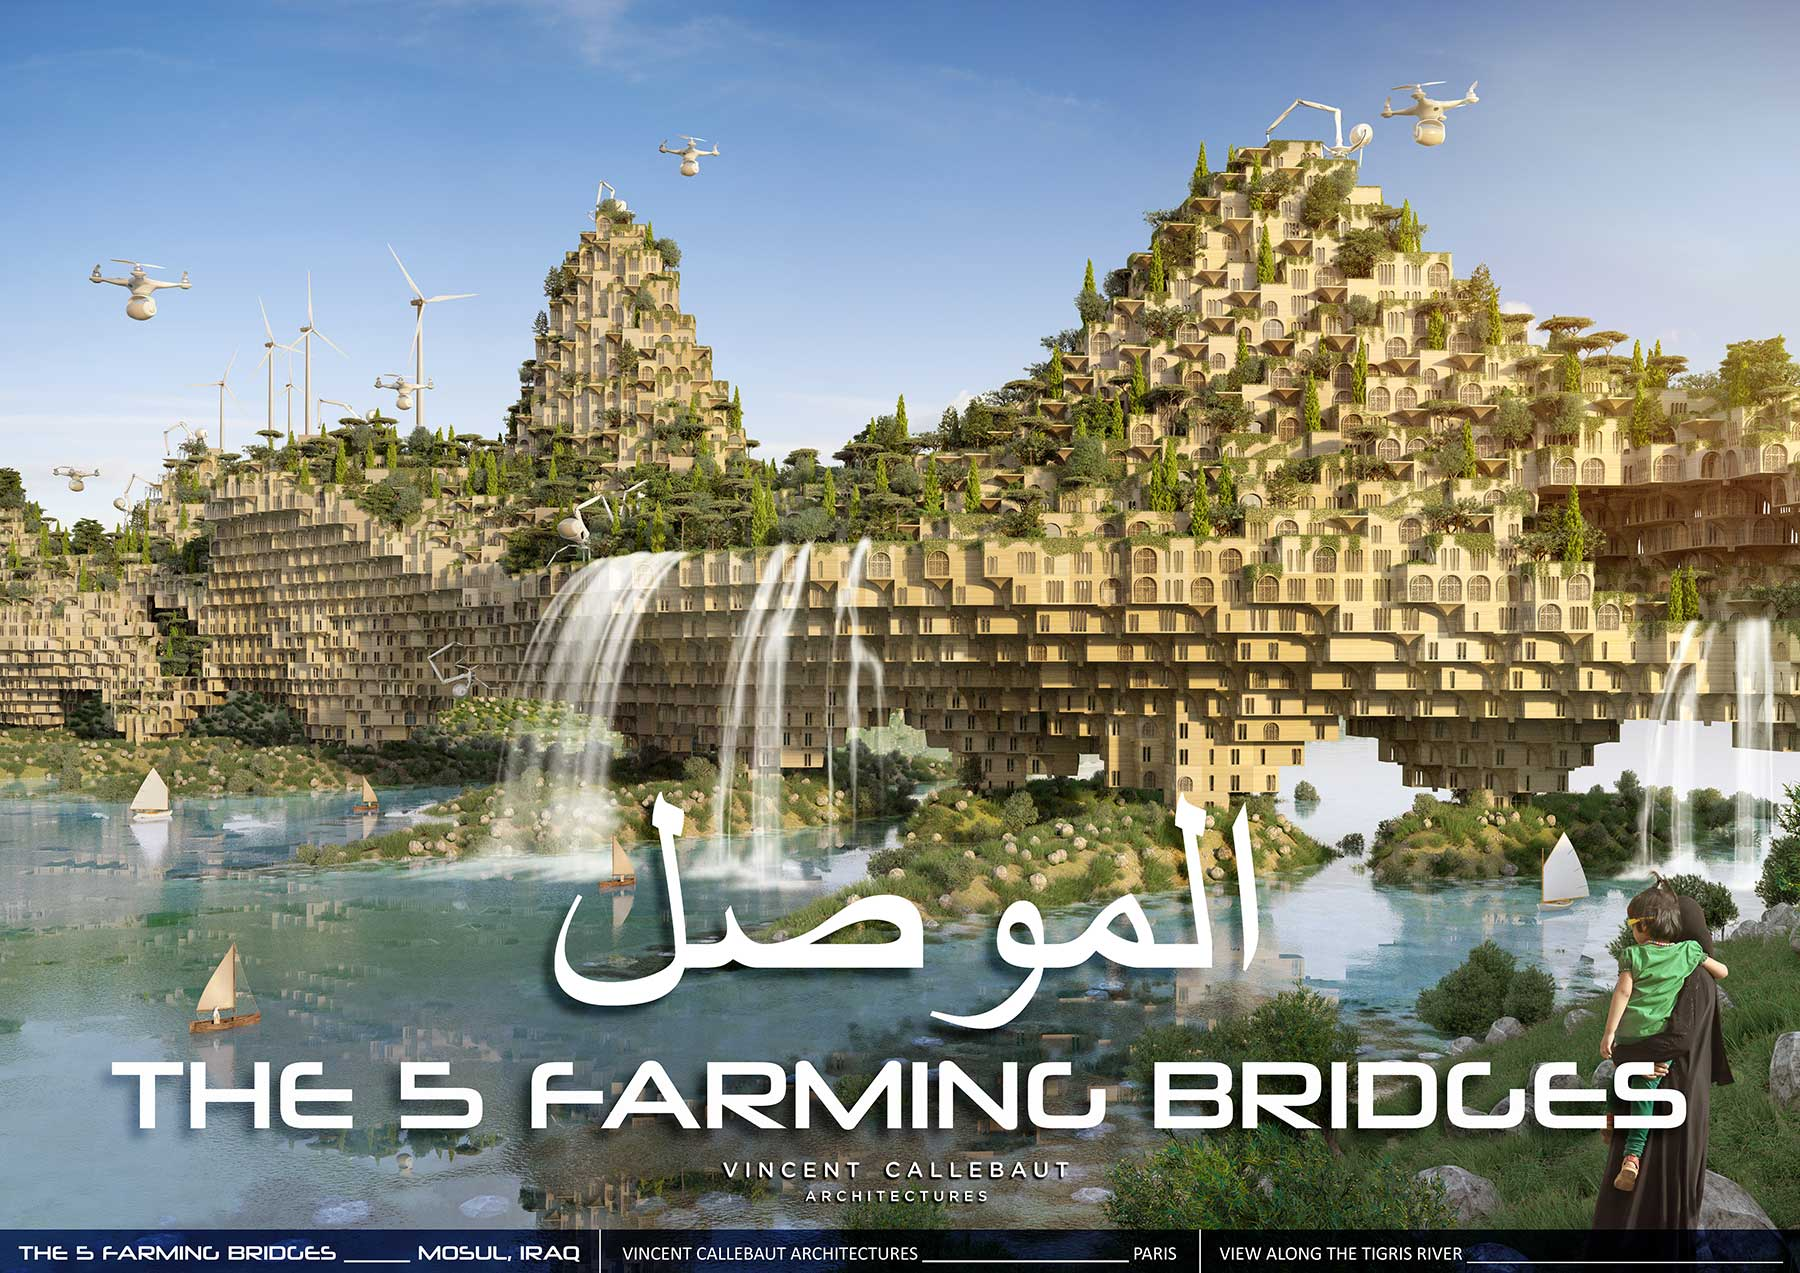 The 5 farming bridges